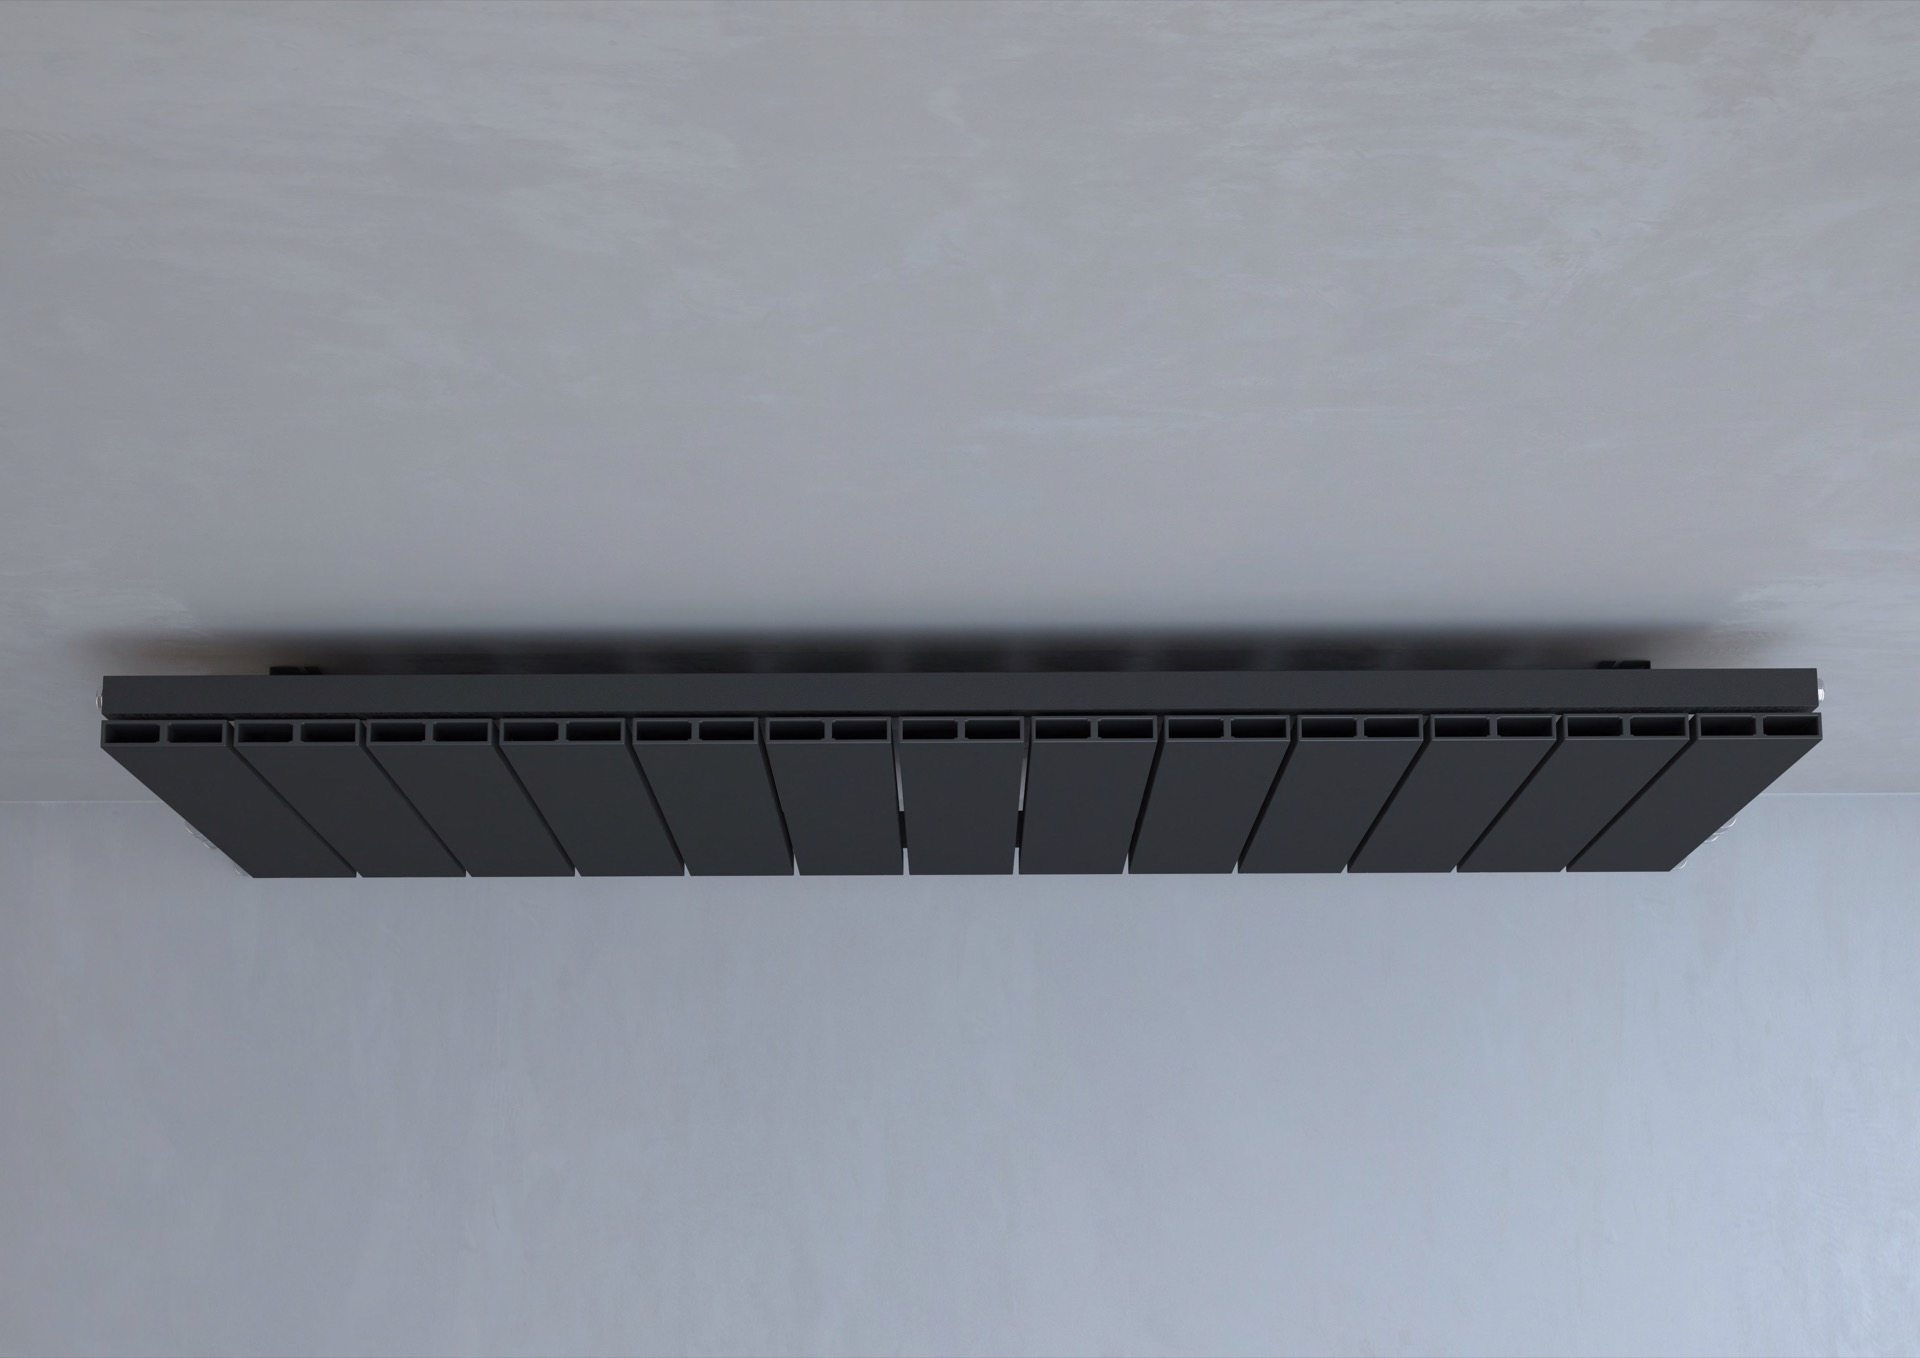 5060235348730 Kudox AluLite Flat Radiator 600mm x 1230mm Textured Black IS3